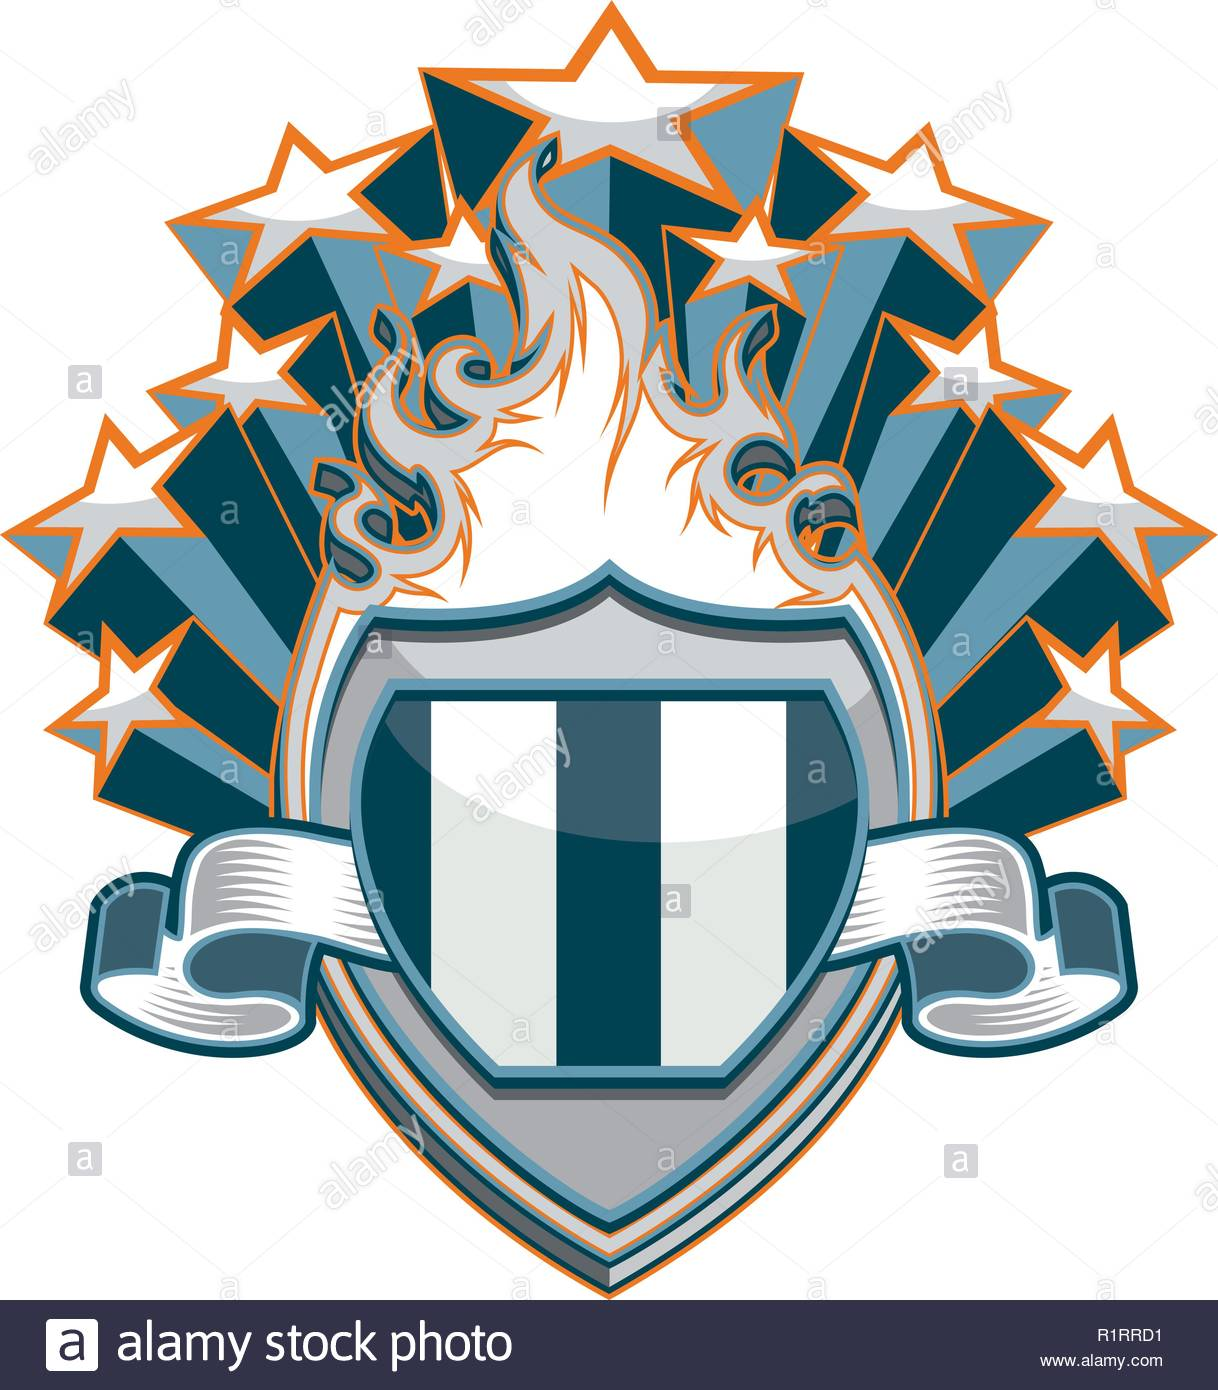 A generic design resource of a flaming shield with a banner and stars emanating from its rear - Stock Vector